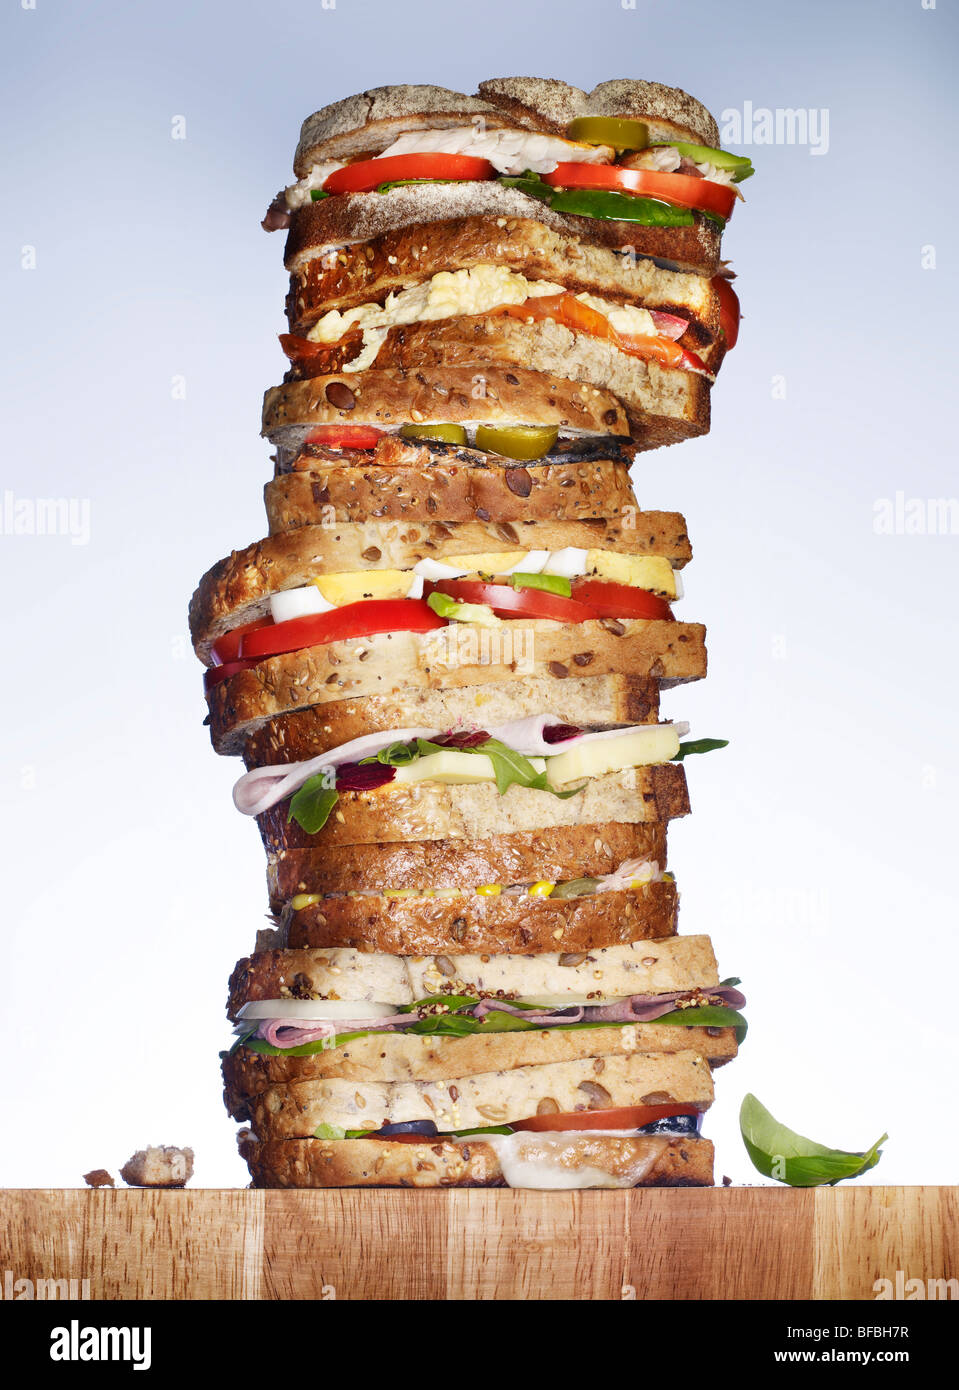 Une pile de sandwiches. Photo Stock